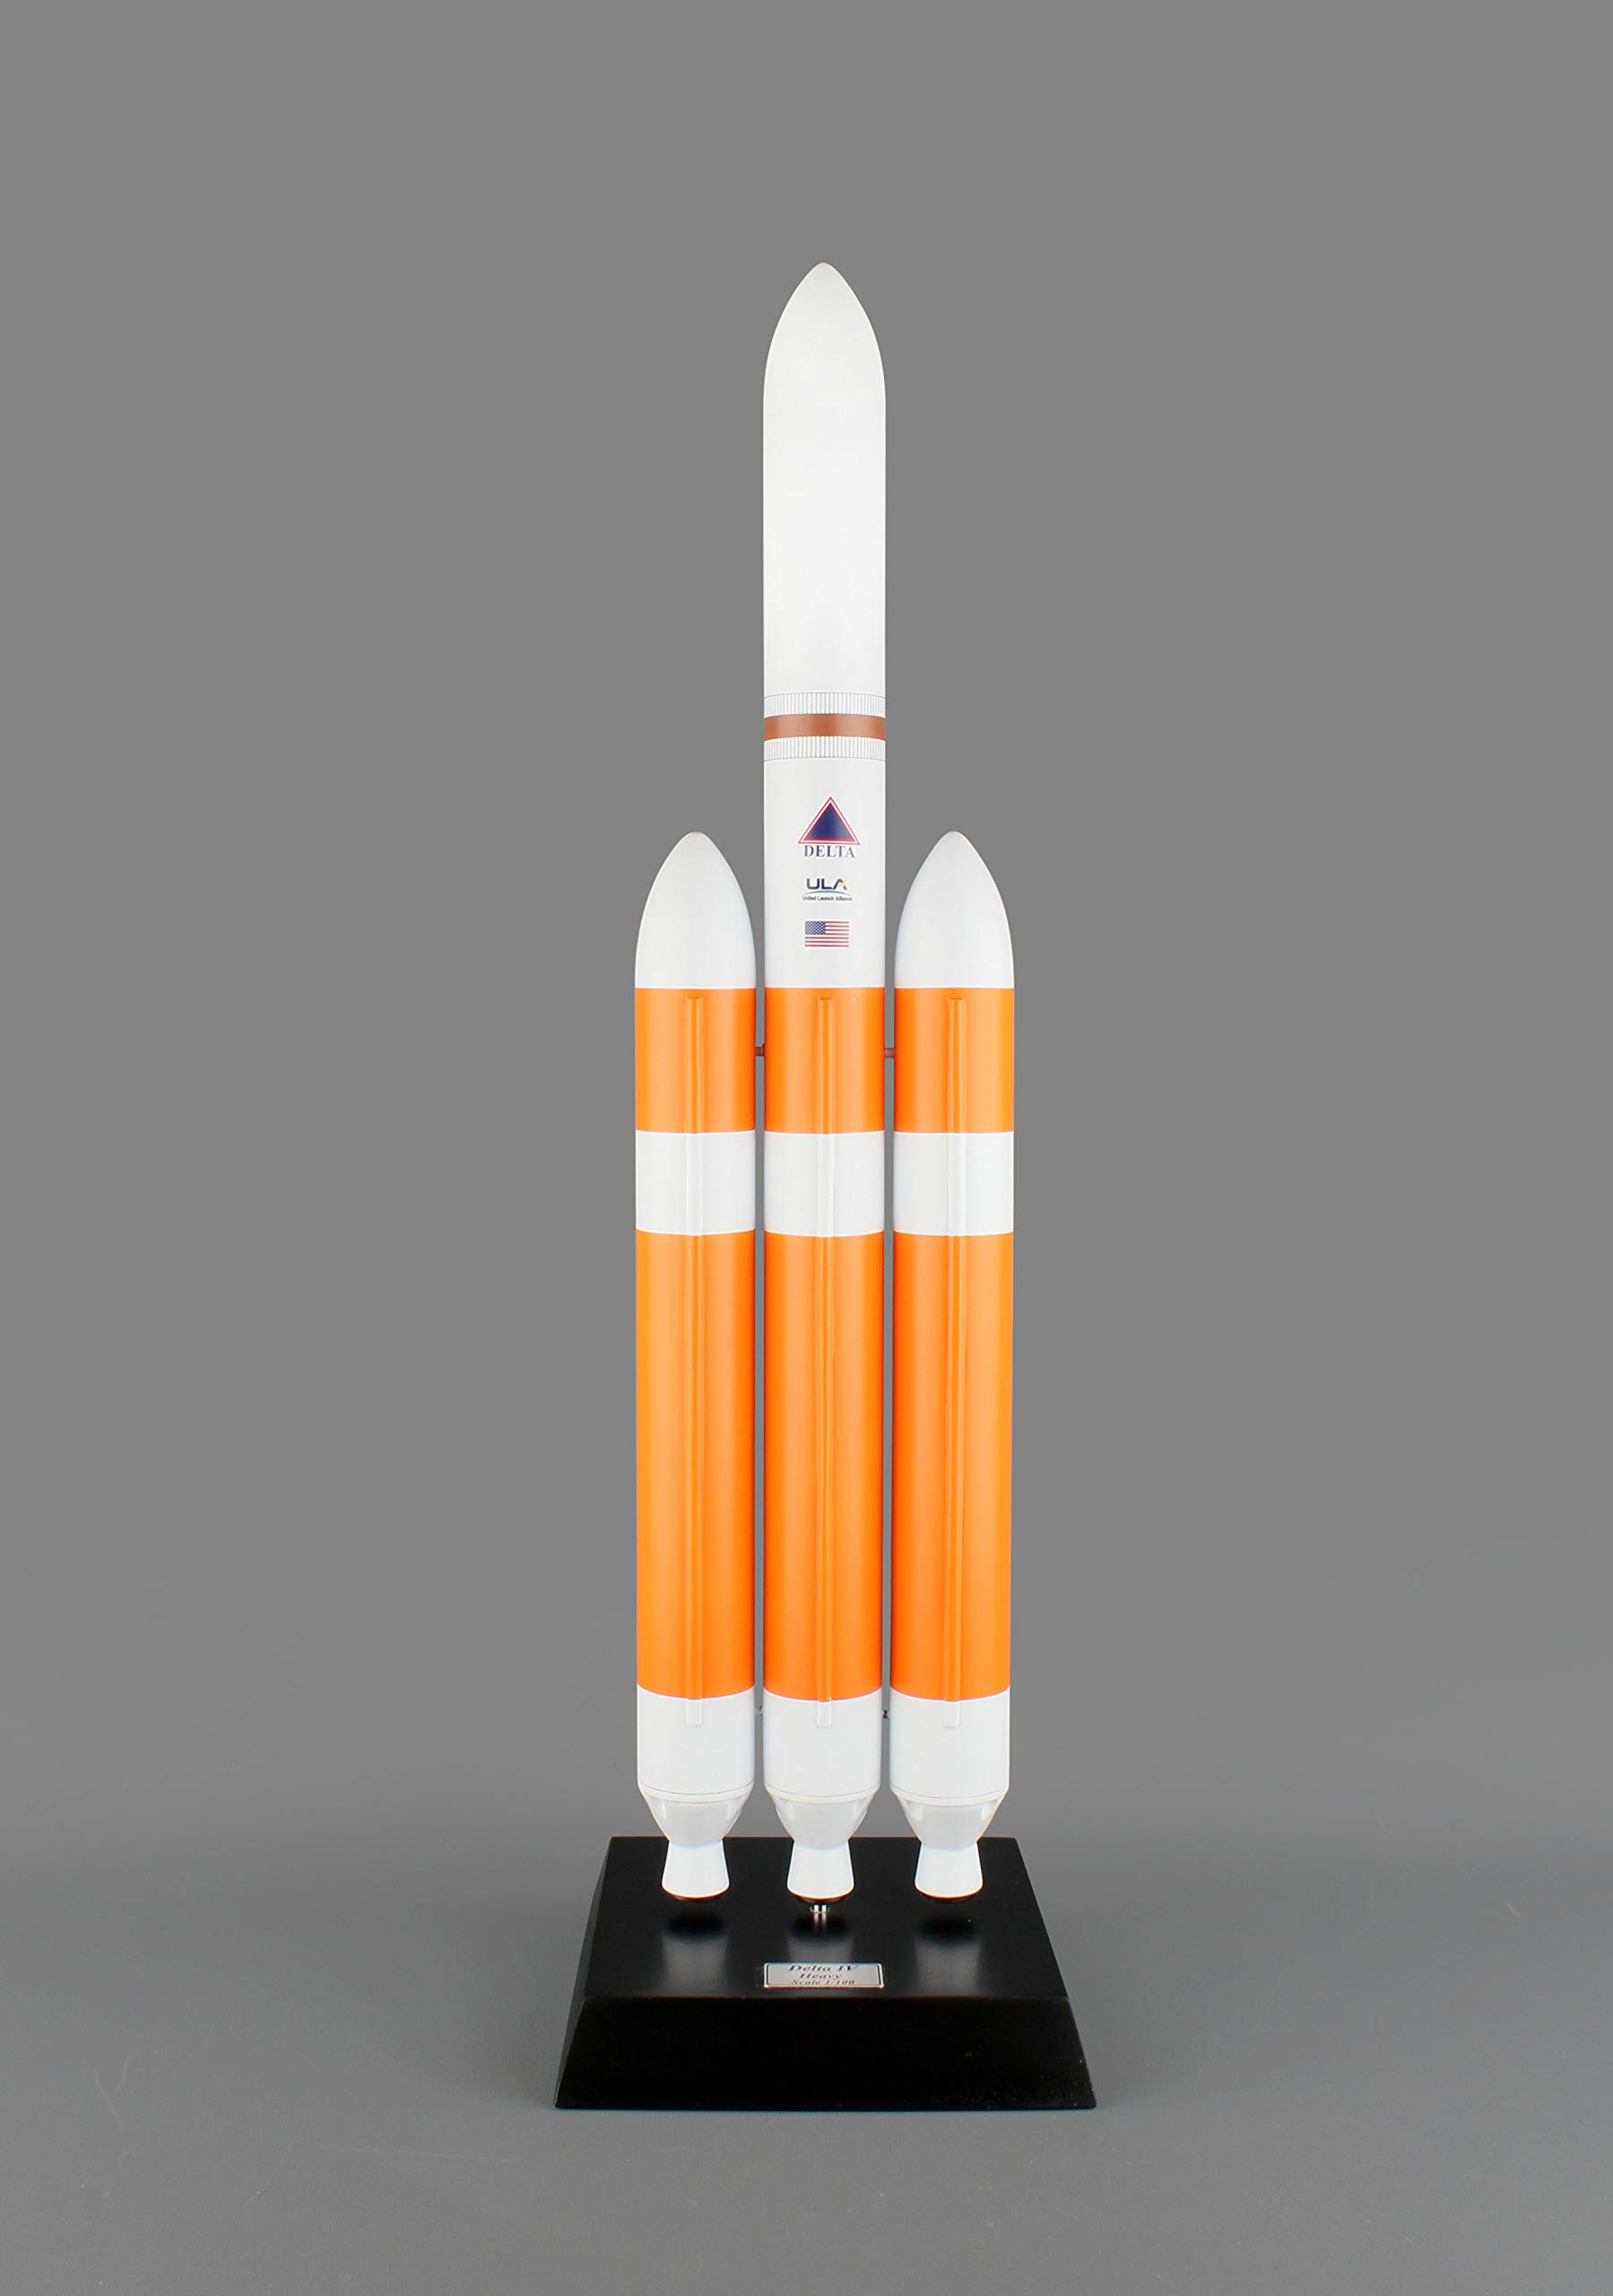 Executive Series Display Models E61100 Delta Iv Rocket Heavy 1-100 by Executive Series Display Models